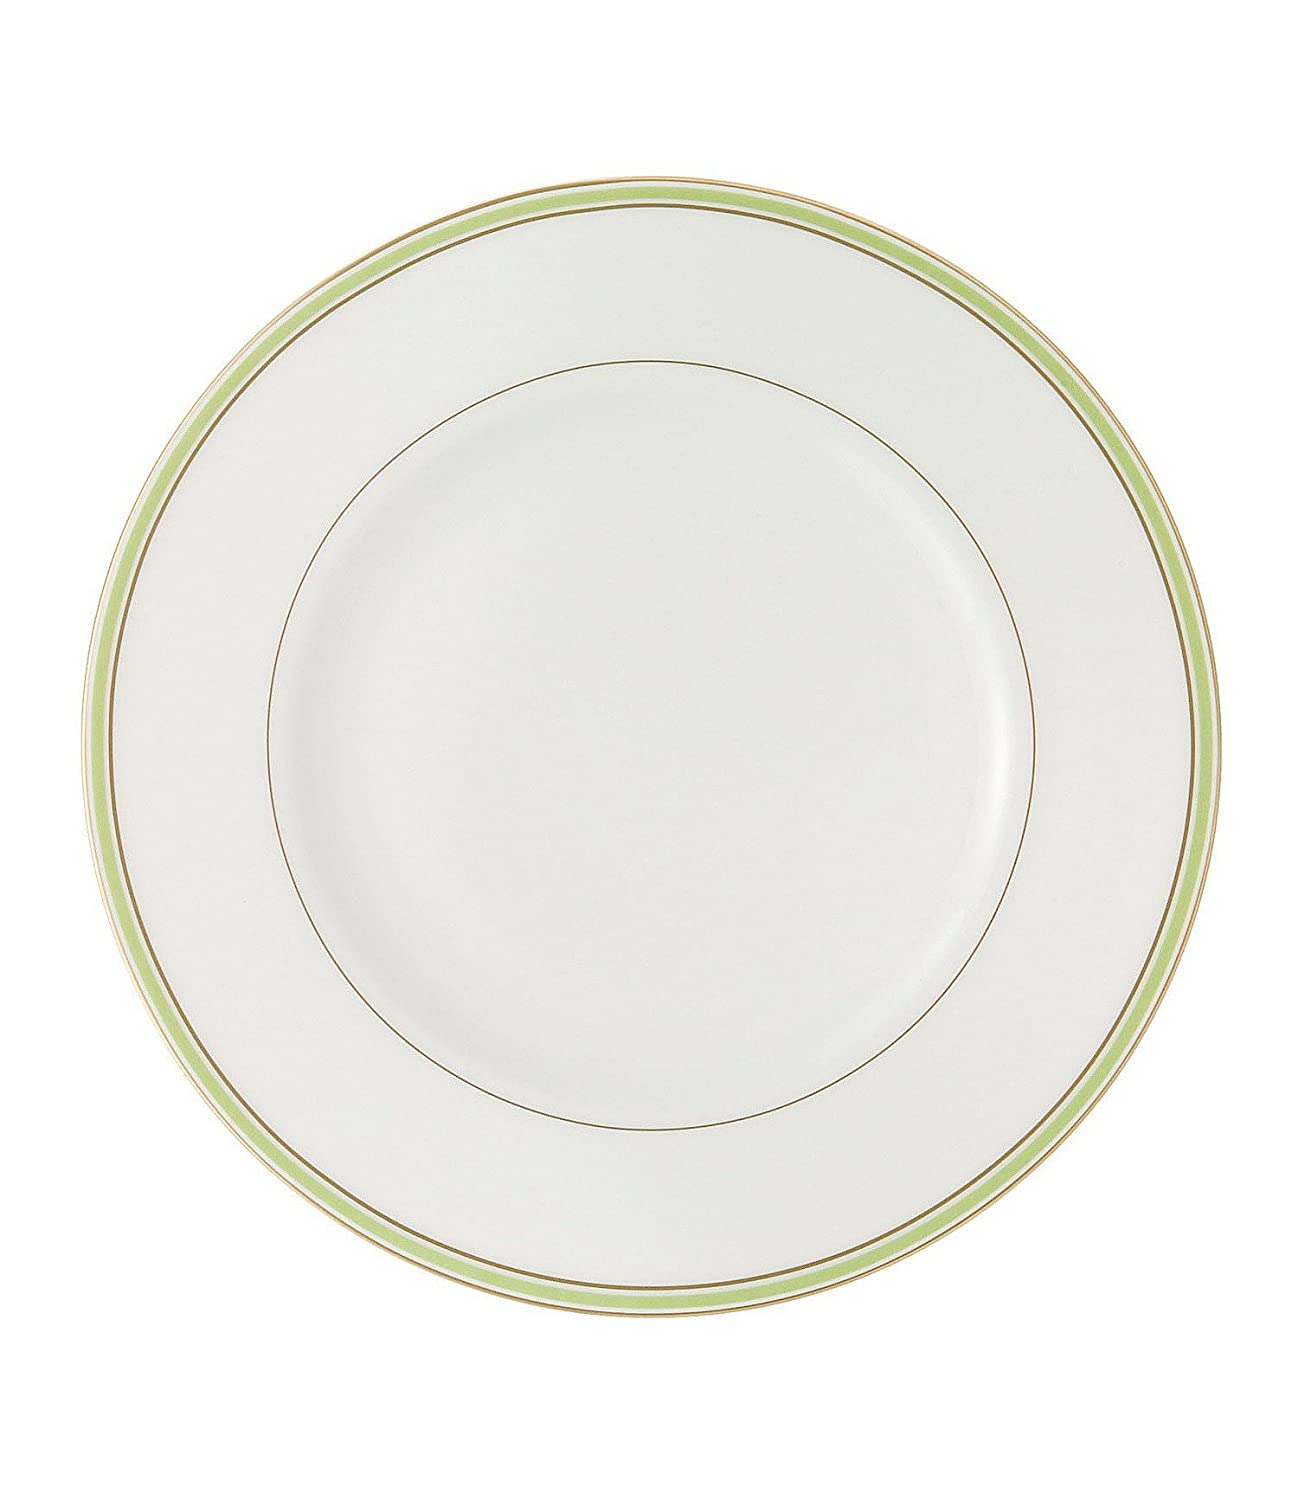 NEW With TAG Waterford Golden Apple Dinner Plate SET FOR 2 EBay